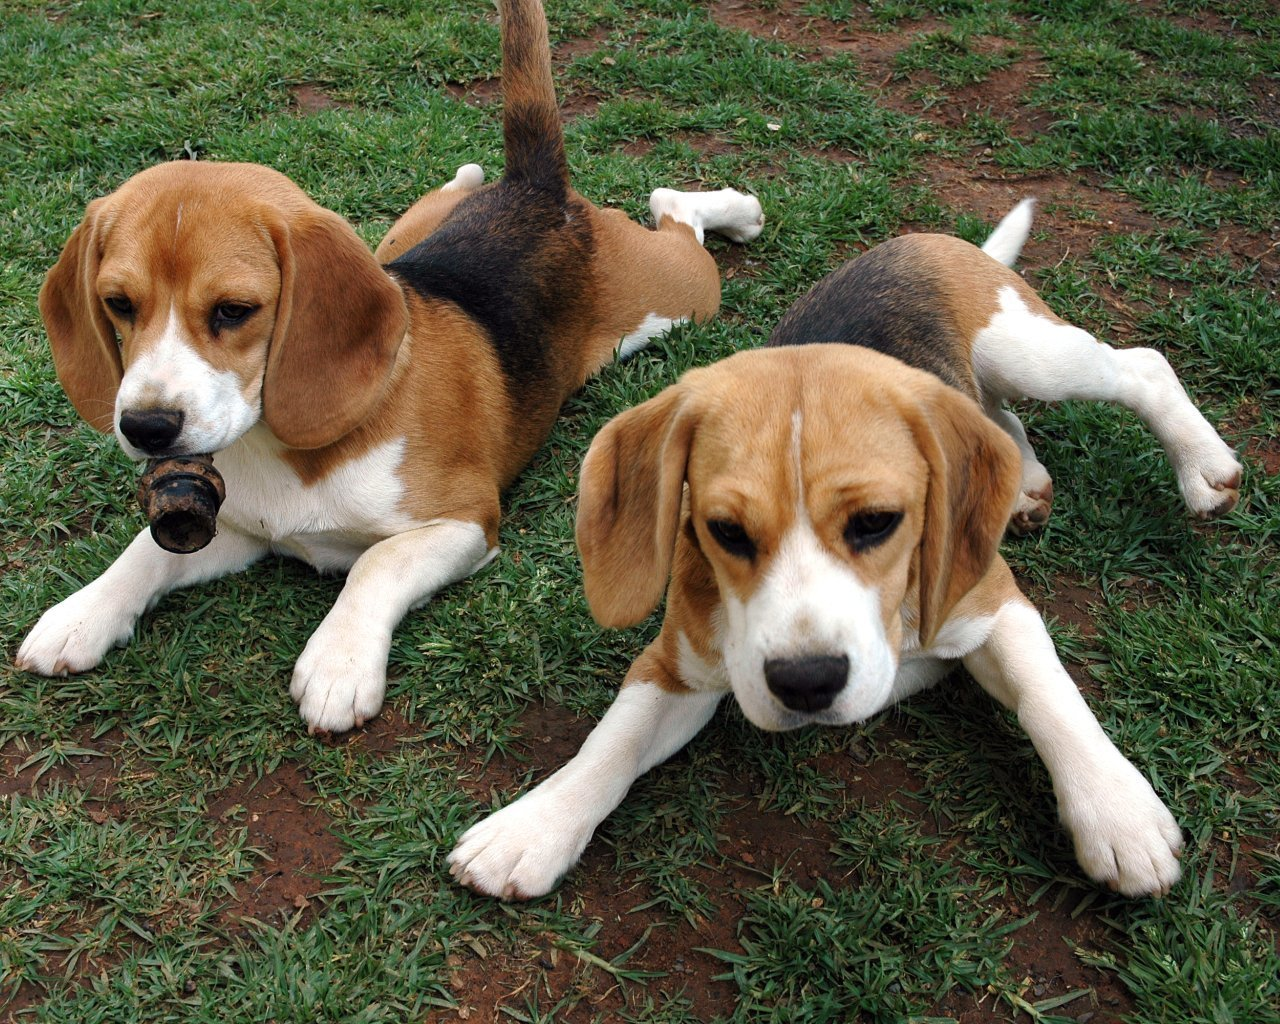 Very Cute Couple Hd Wallpaper Beagle Dogs Temperament Exercise And Grooming